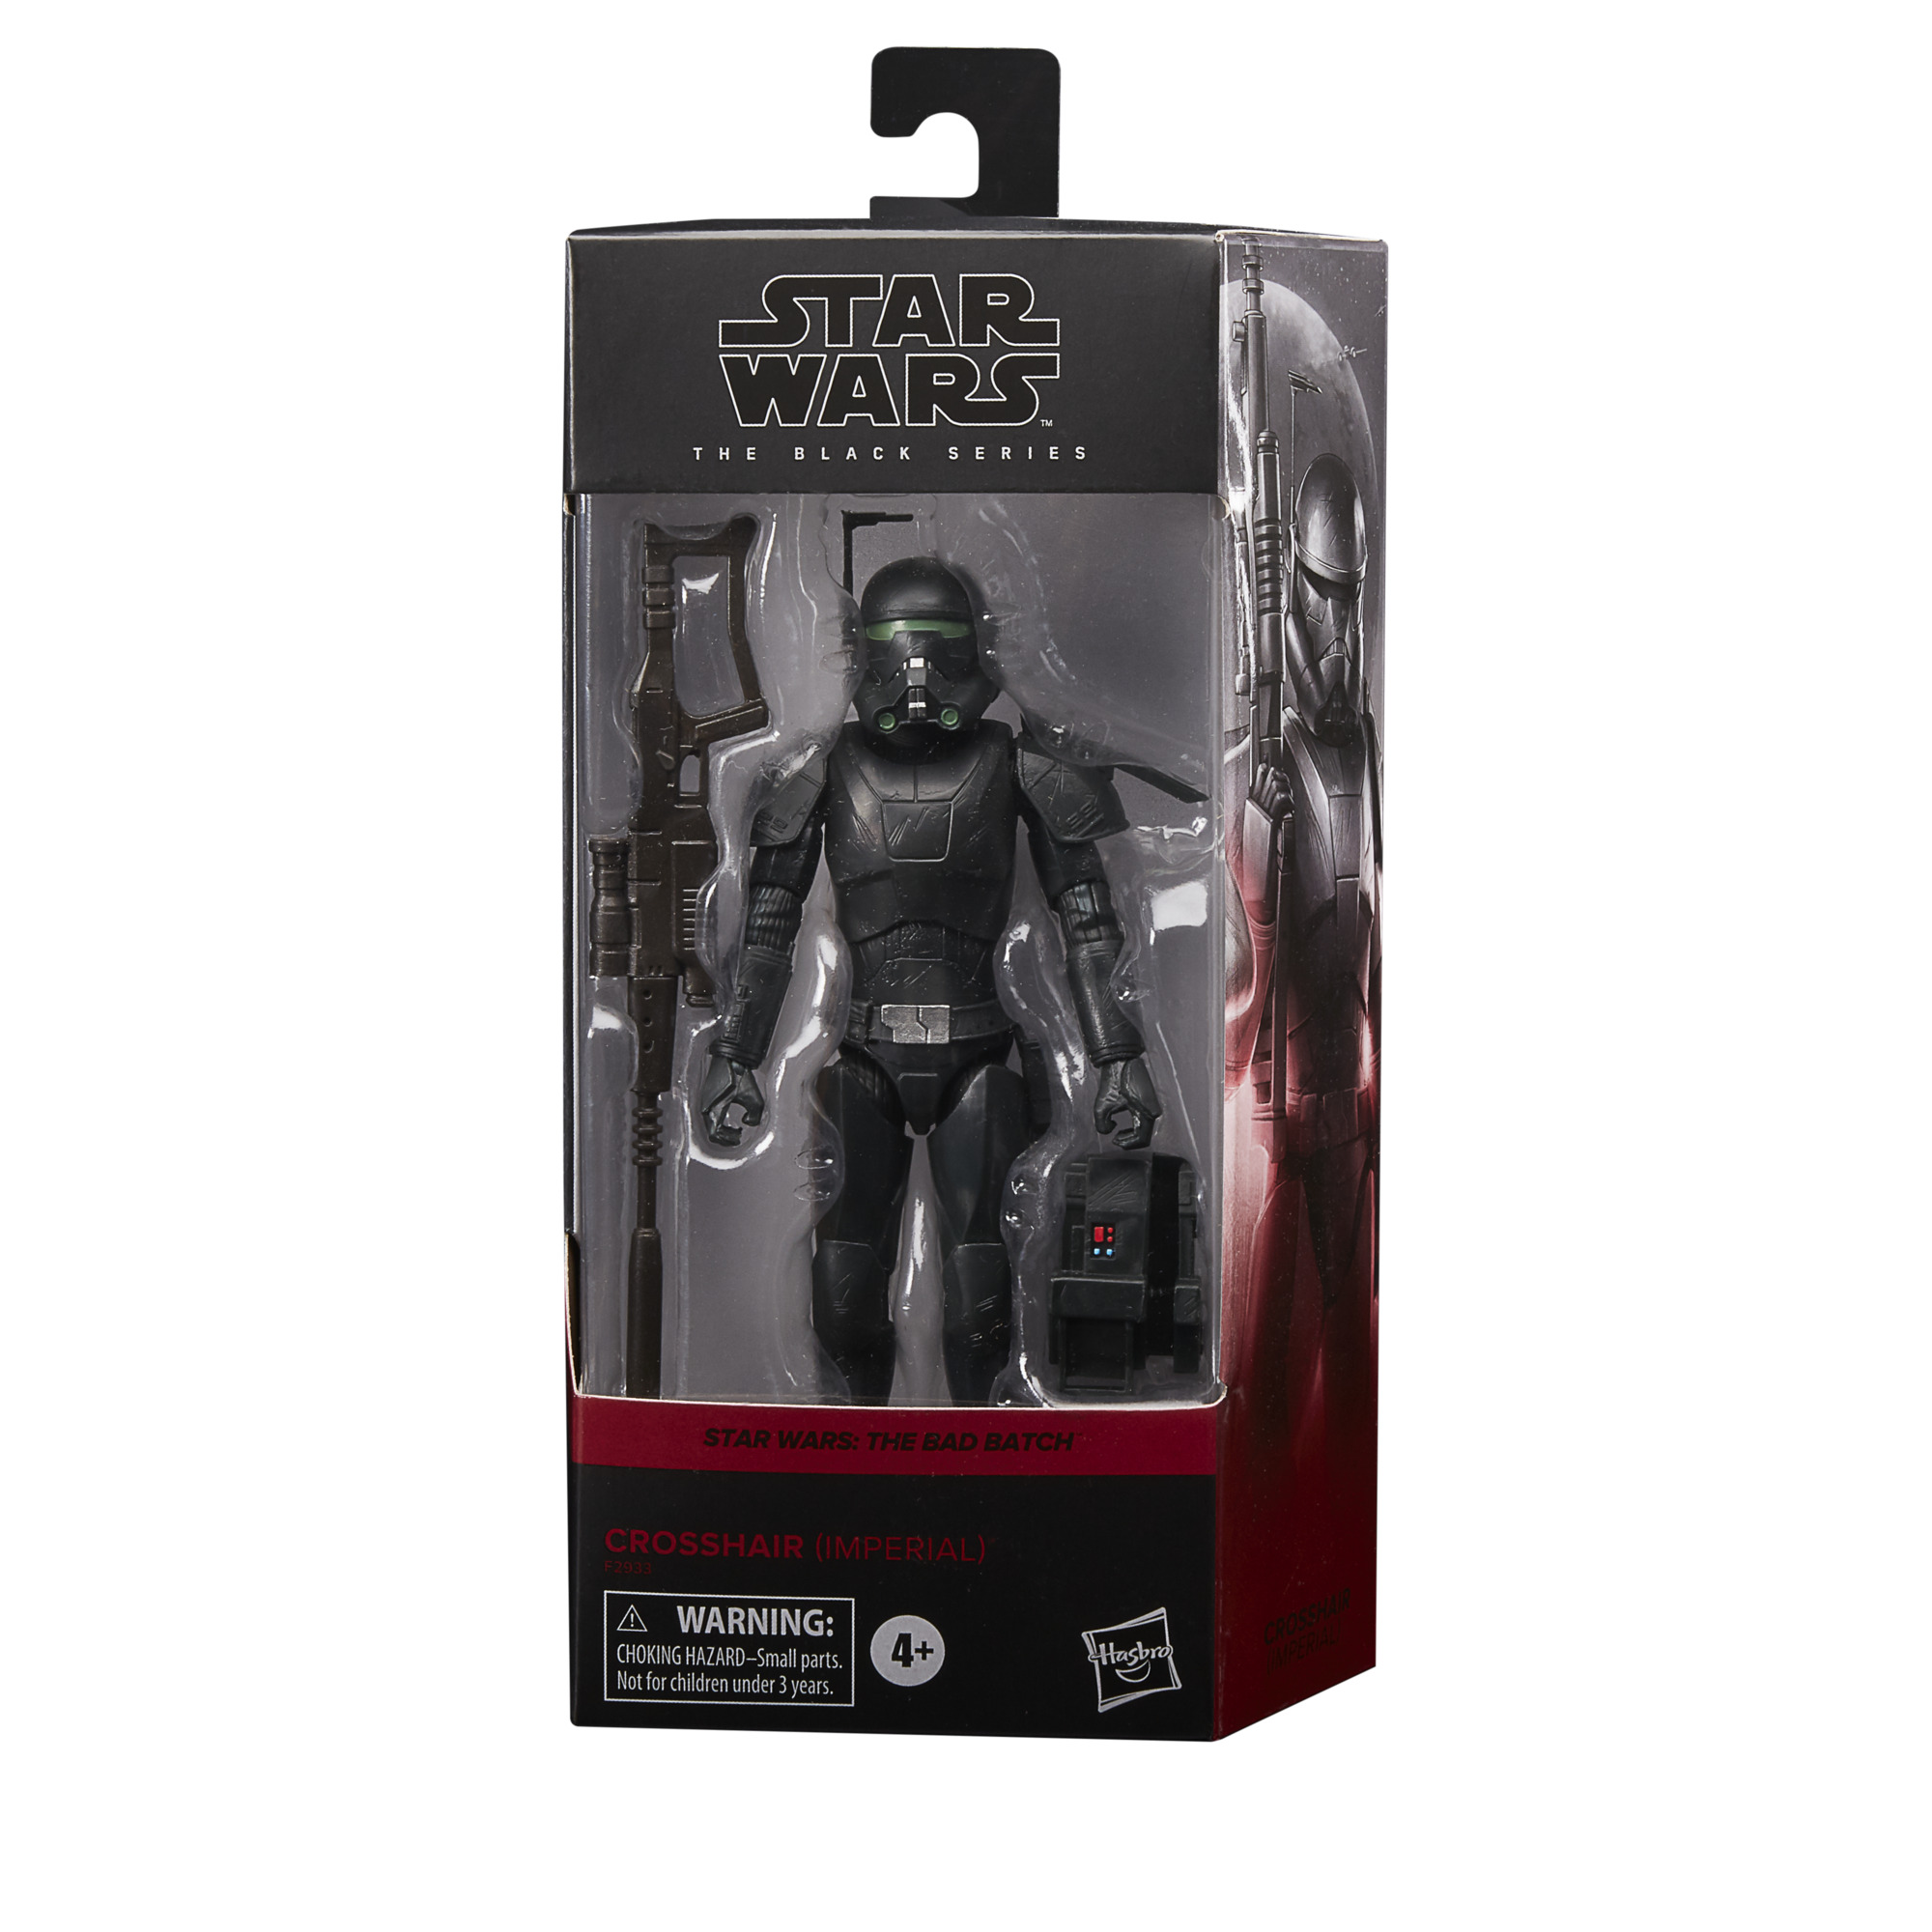 Star Wars The Black Series Crosshair Imperial 6-Inch Action Figure画像